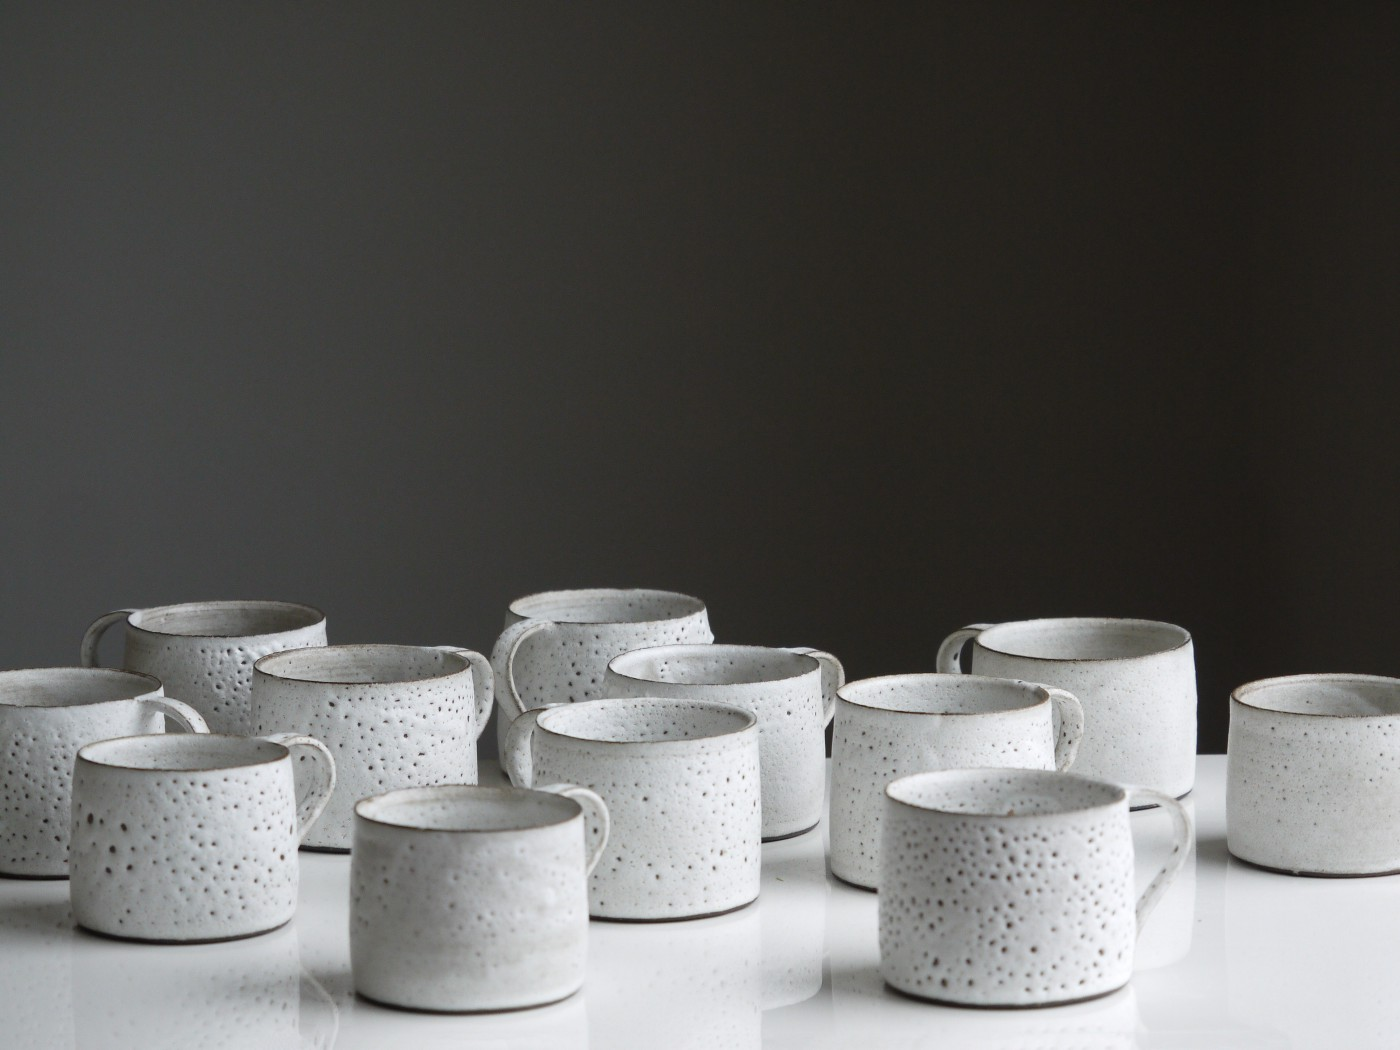 White mugs on a shiny white table, against a black background. The mugs have irregular shapes.